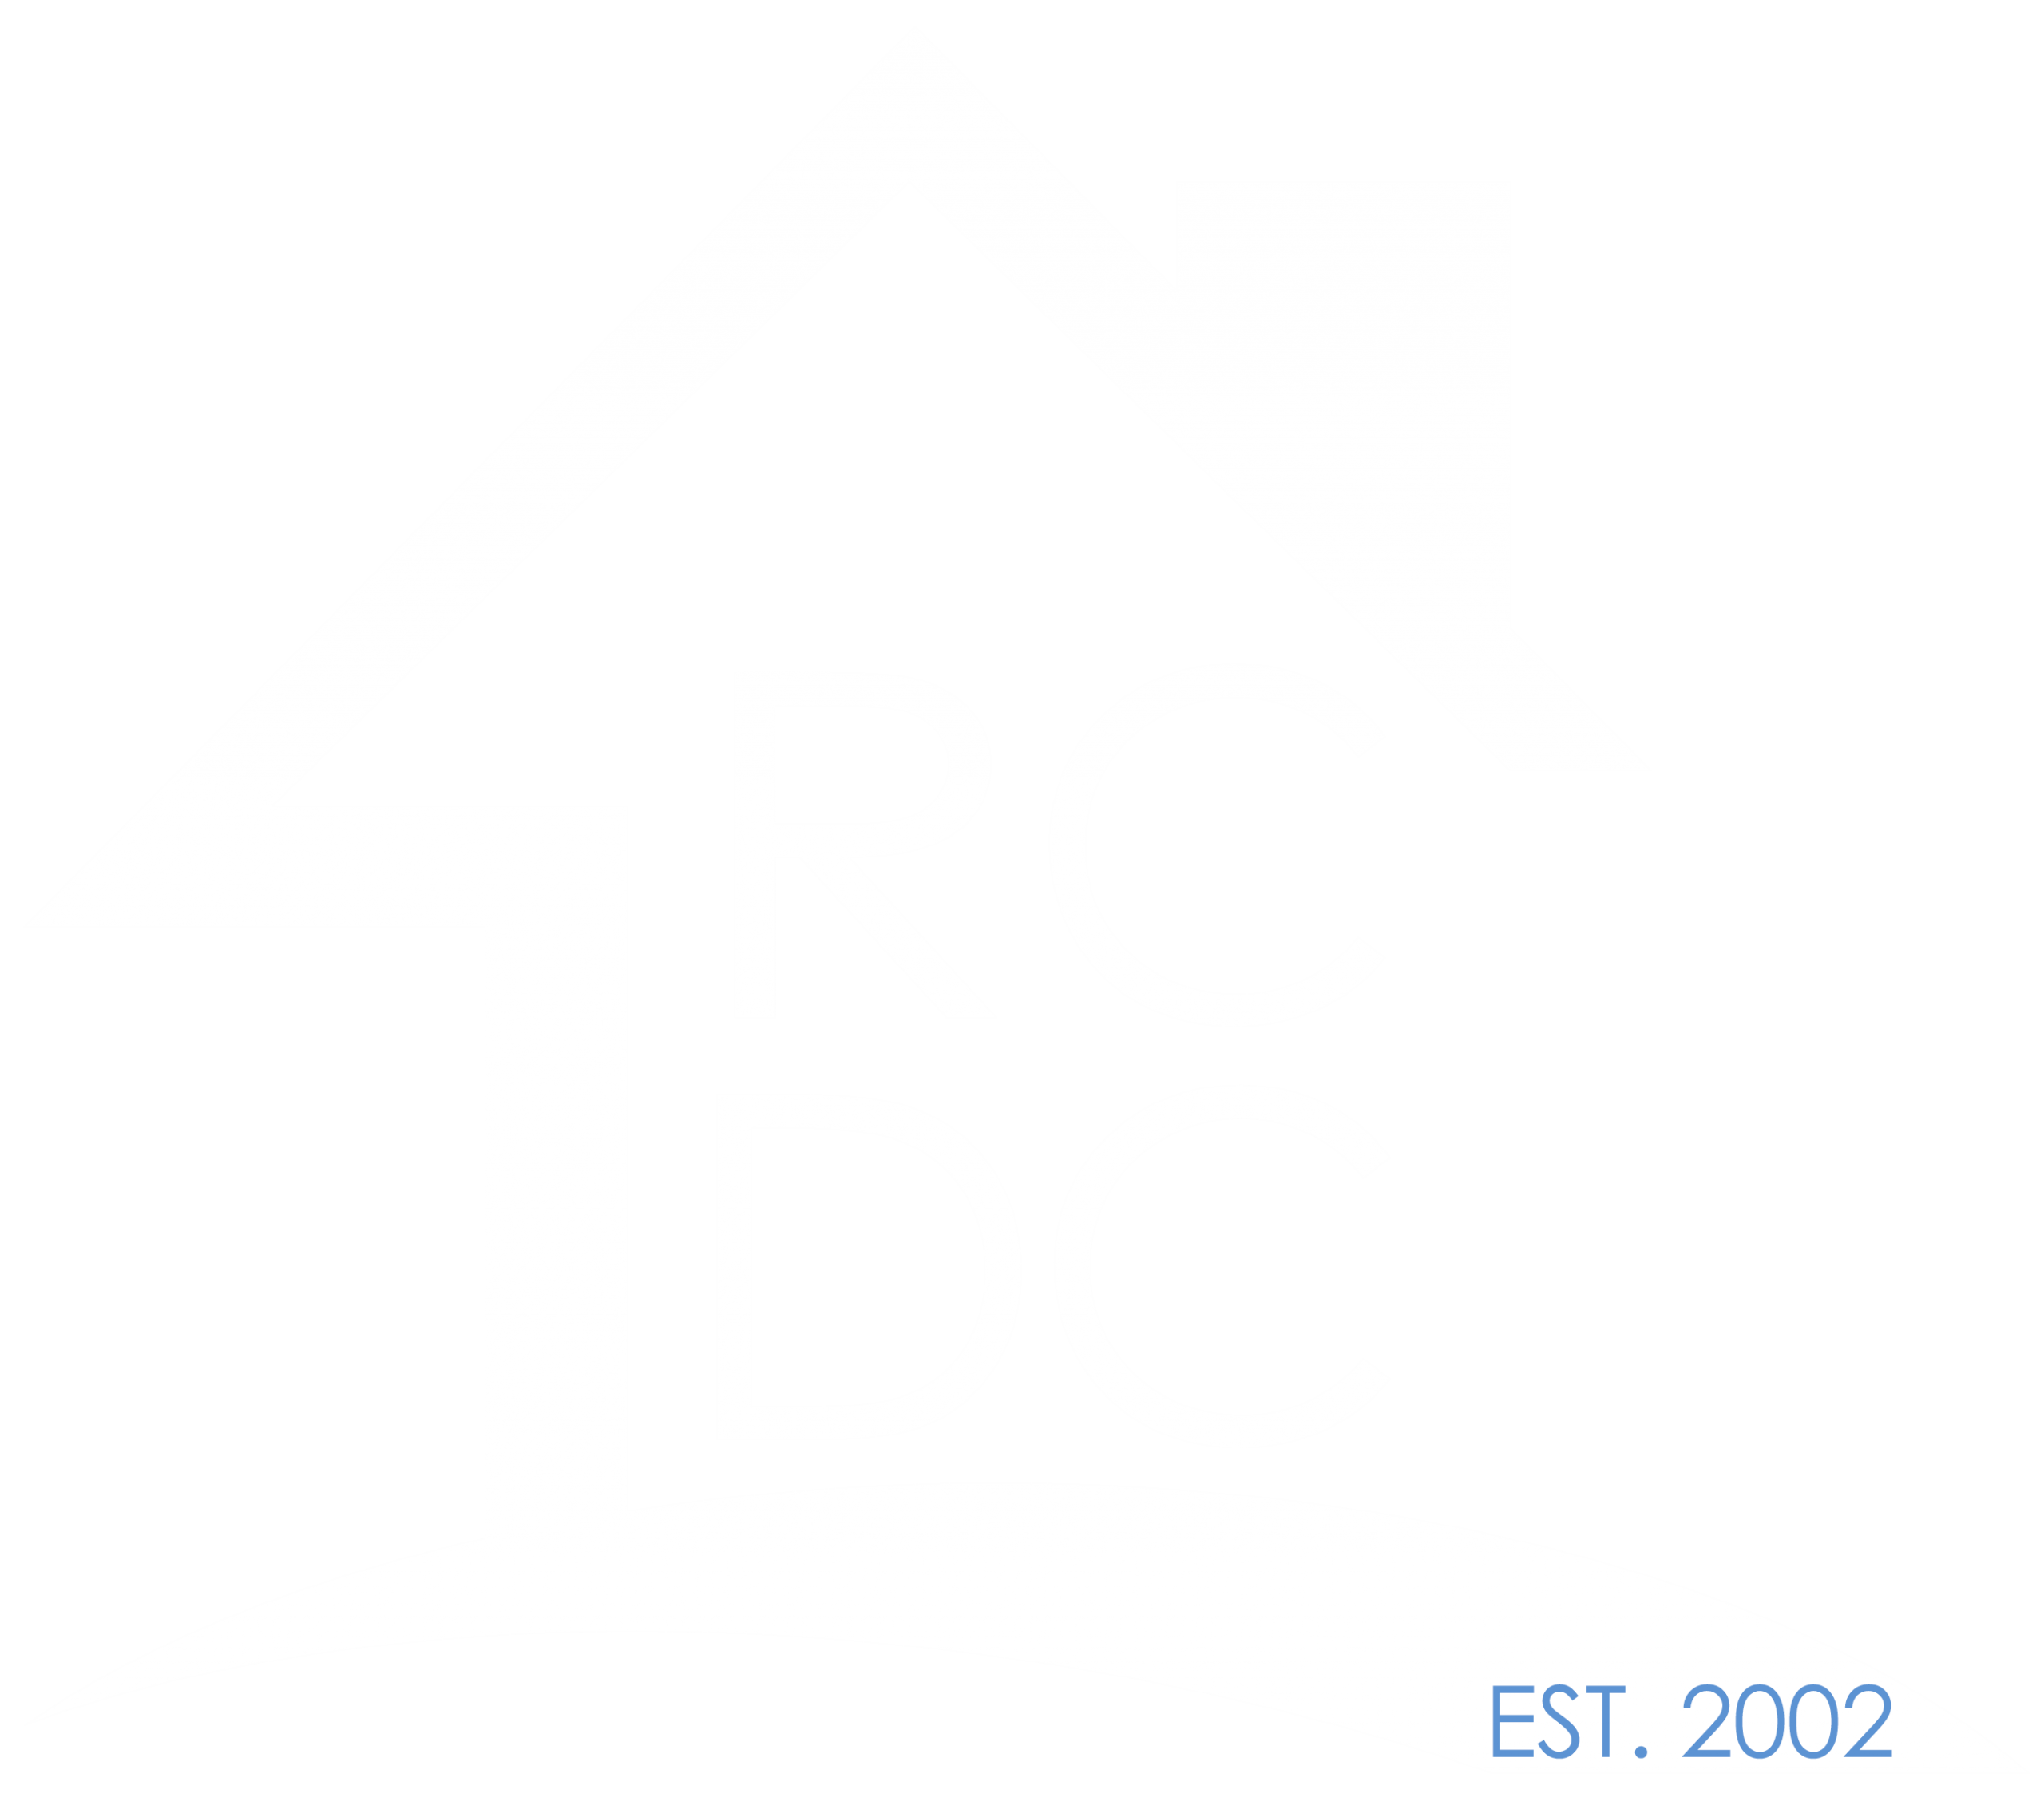 Raleigh CDC